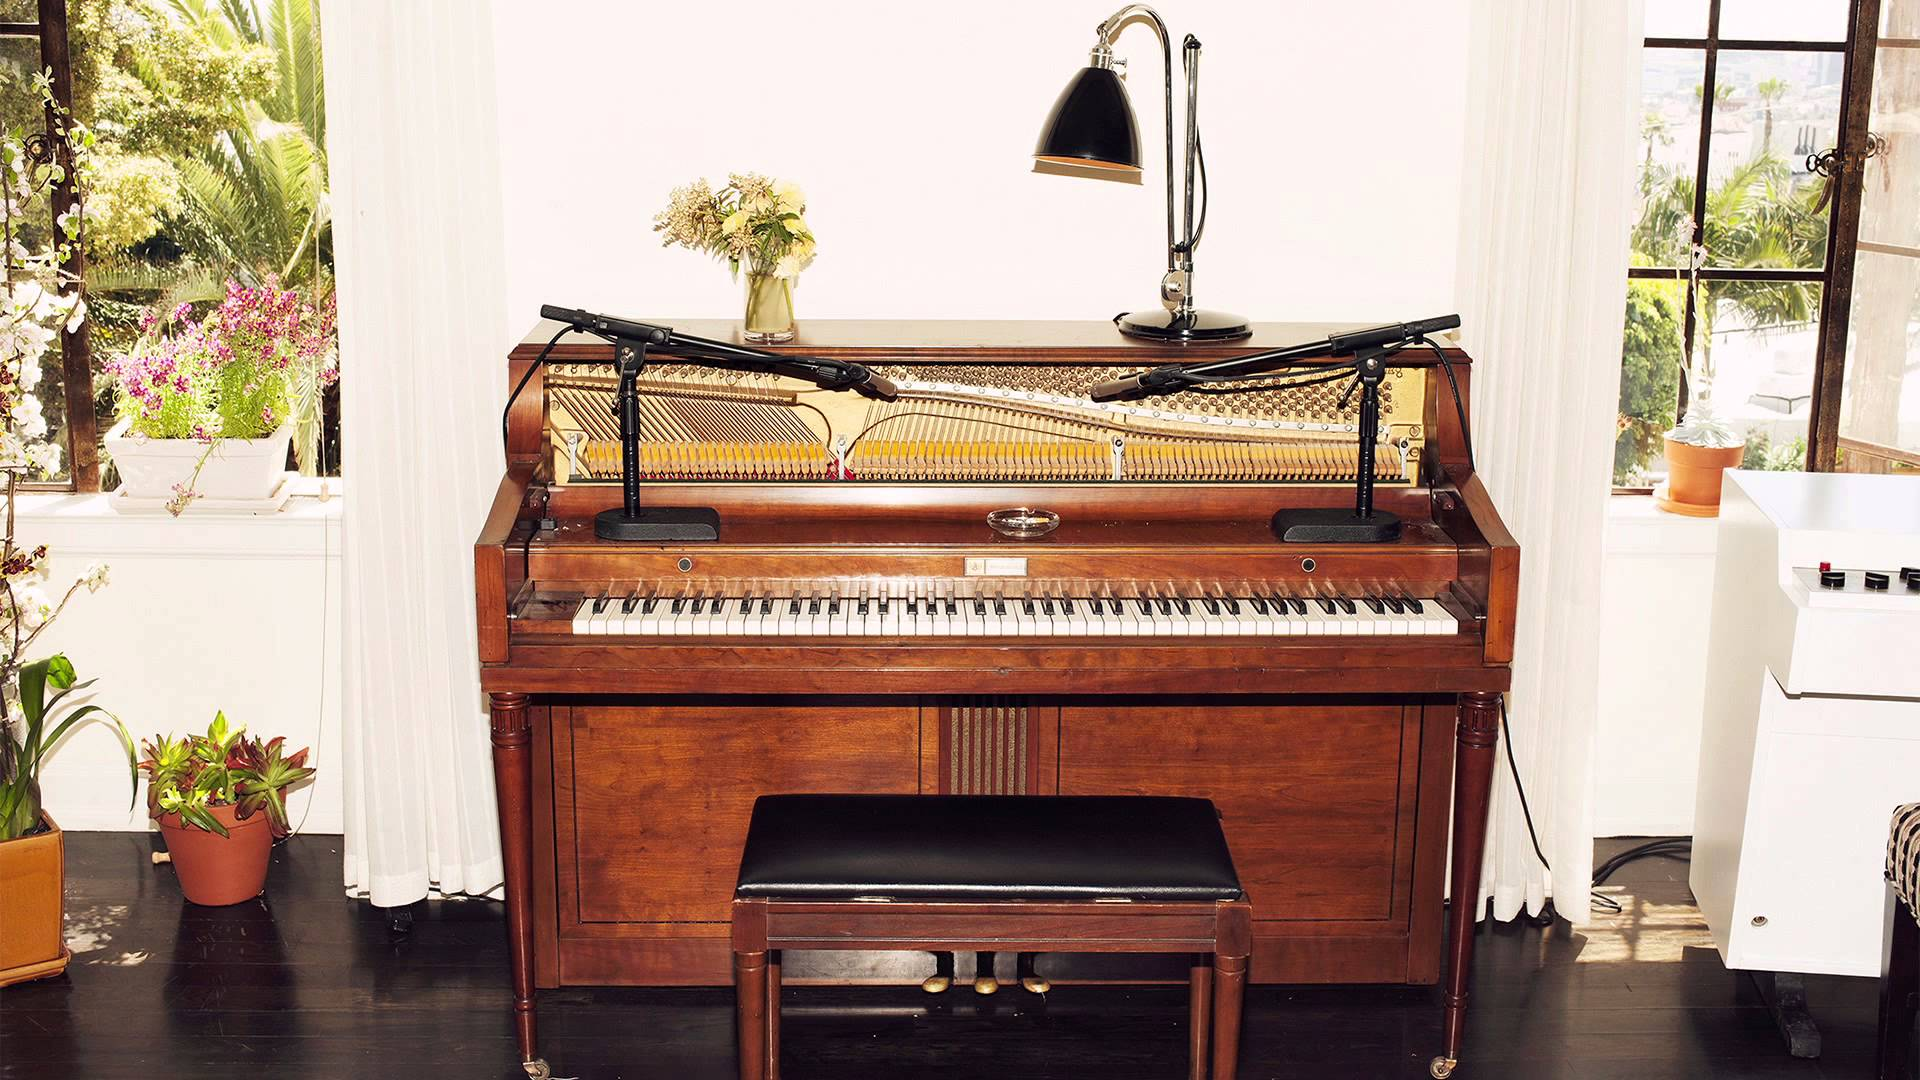 Emile Haynie shares 'Come Find Me', feat Lykke Li and The xx's Romy Madley Croft